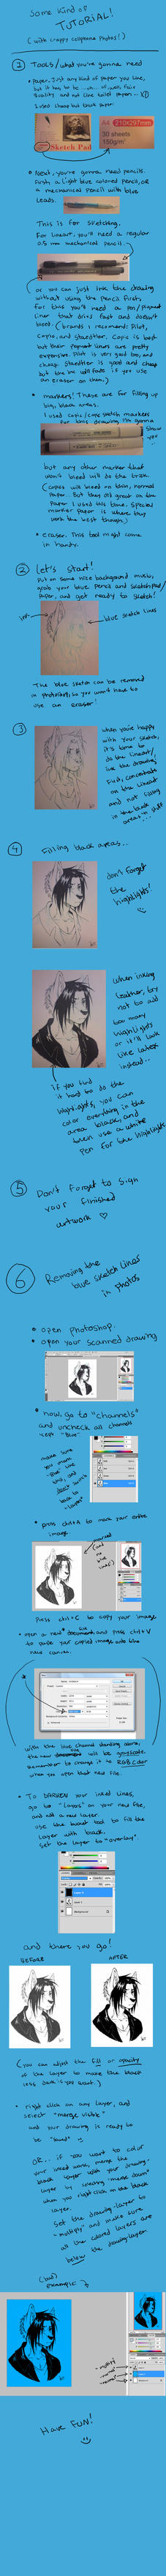 hopefully helpful tutorial by oomizuao